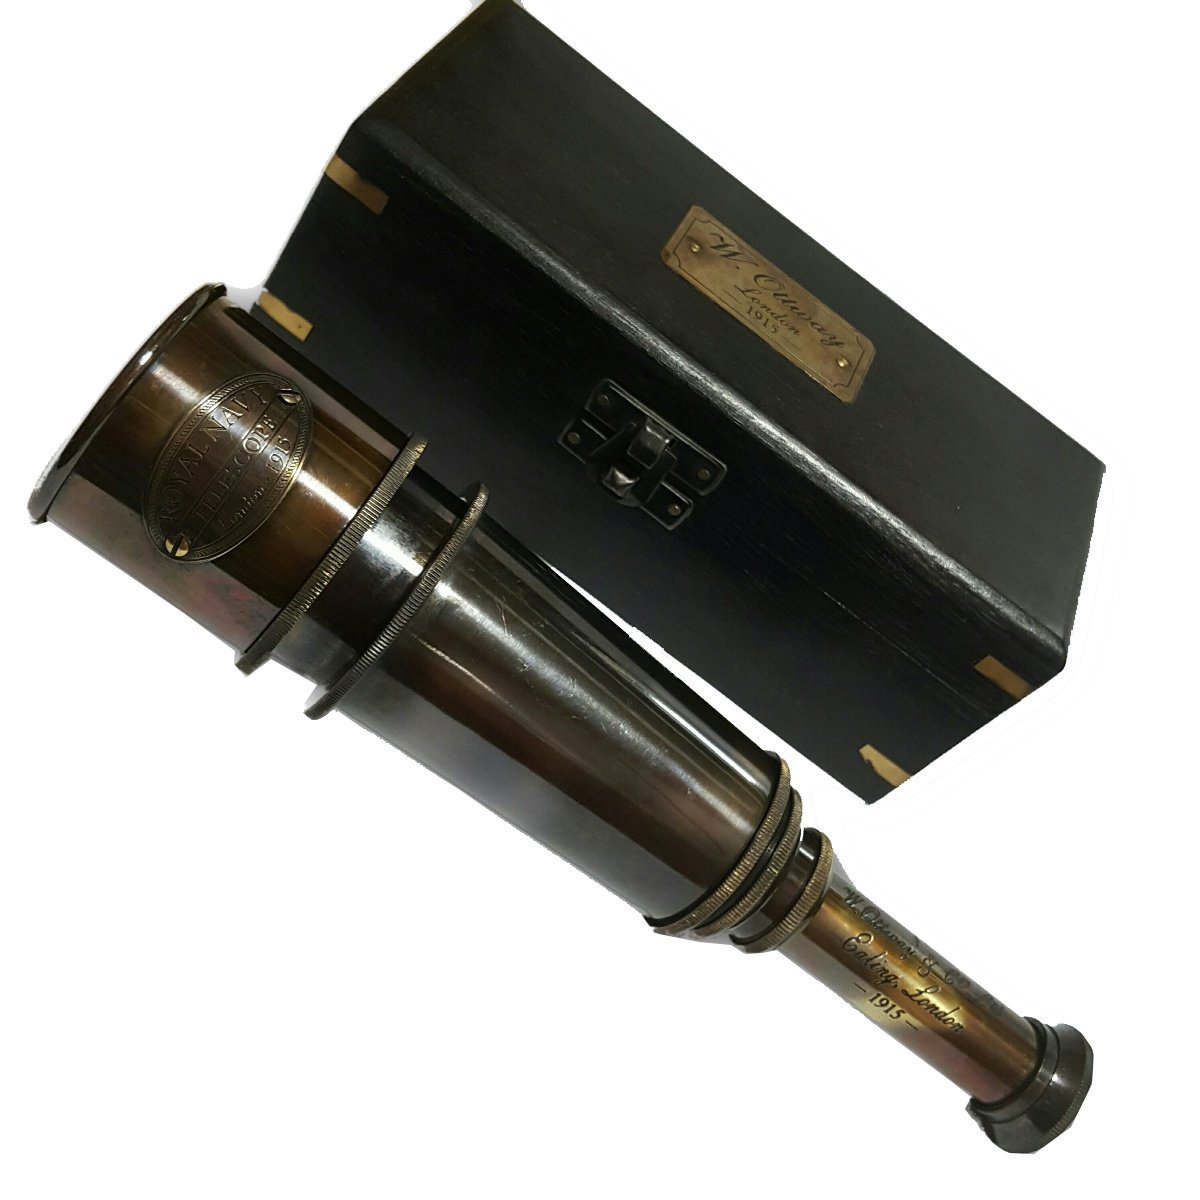 Global Art World W.Ottway Vintage Old Art Marine Décor Antique Navy London Nautical Spyglass Telescope TC 021